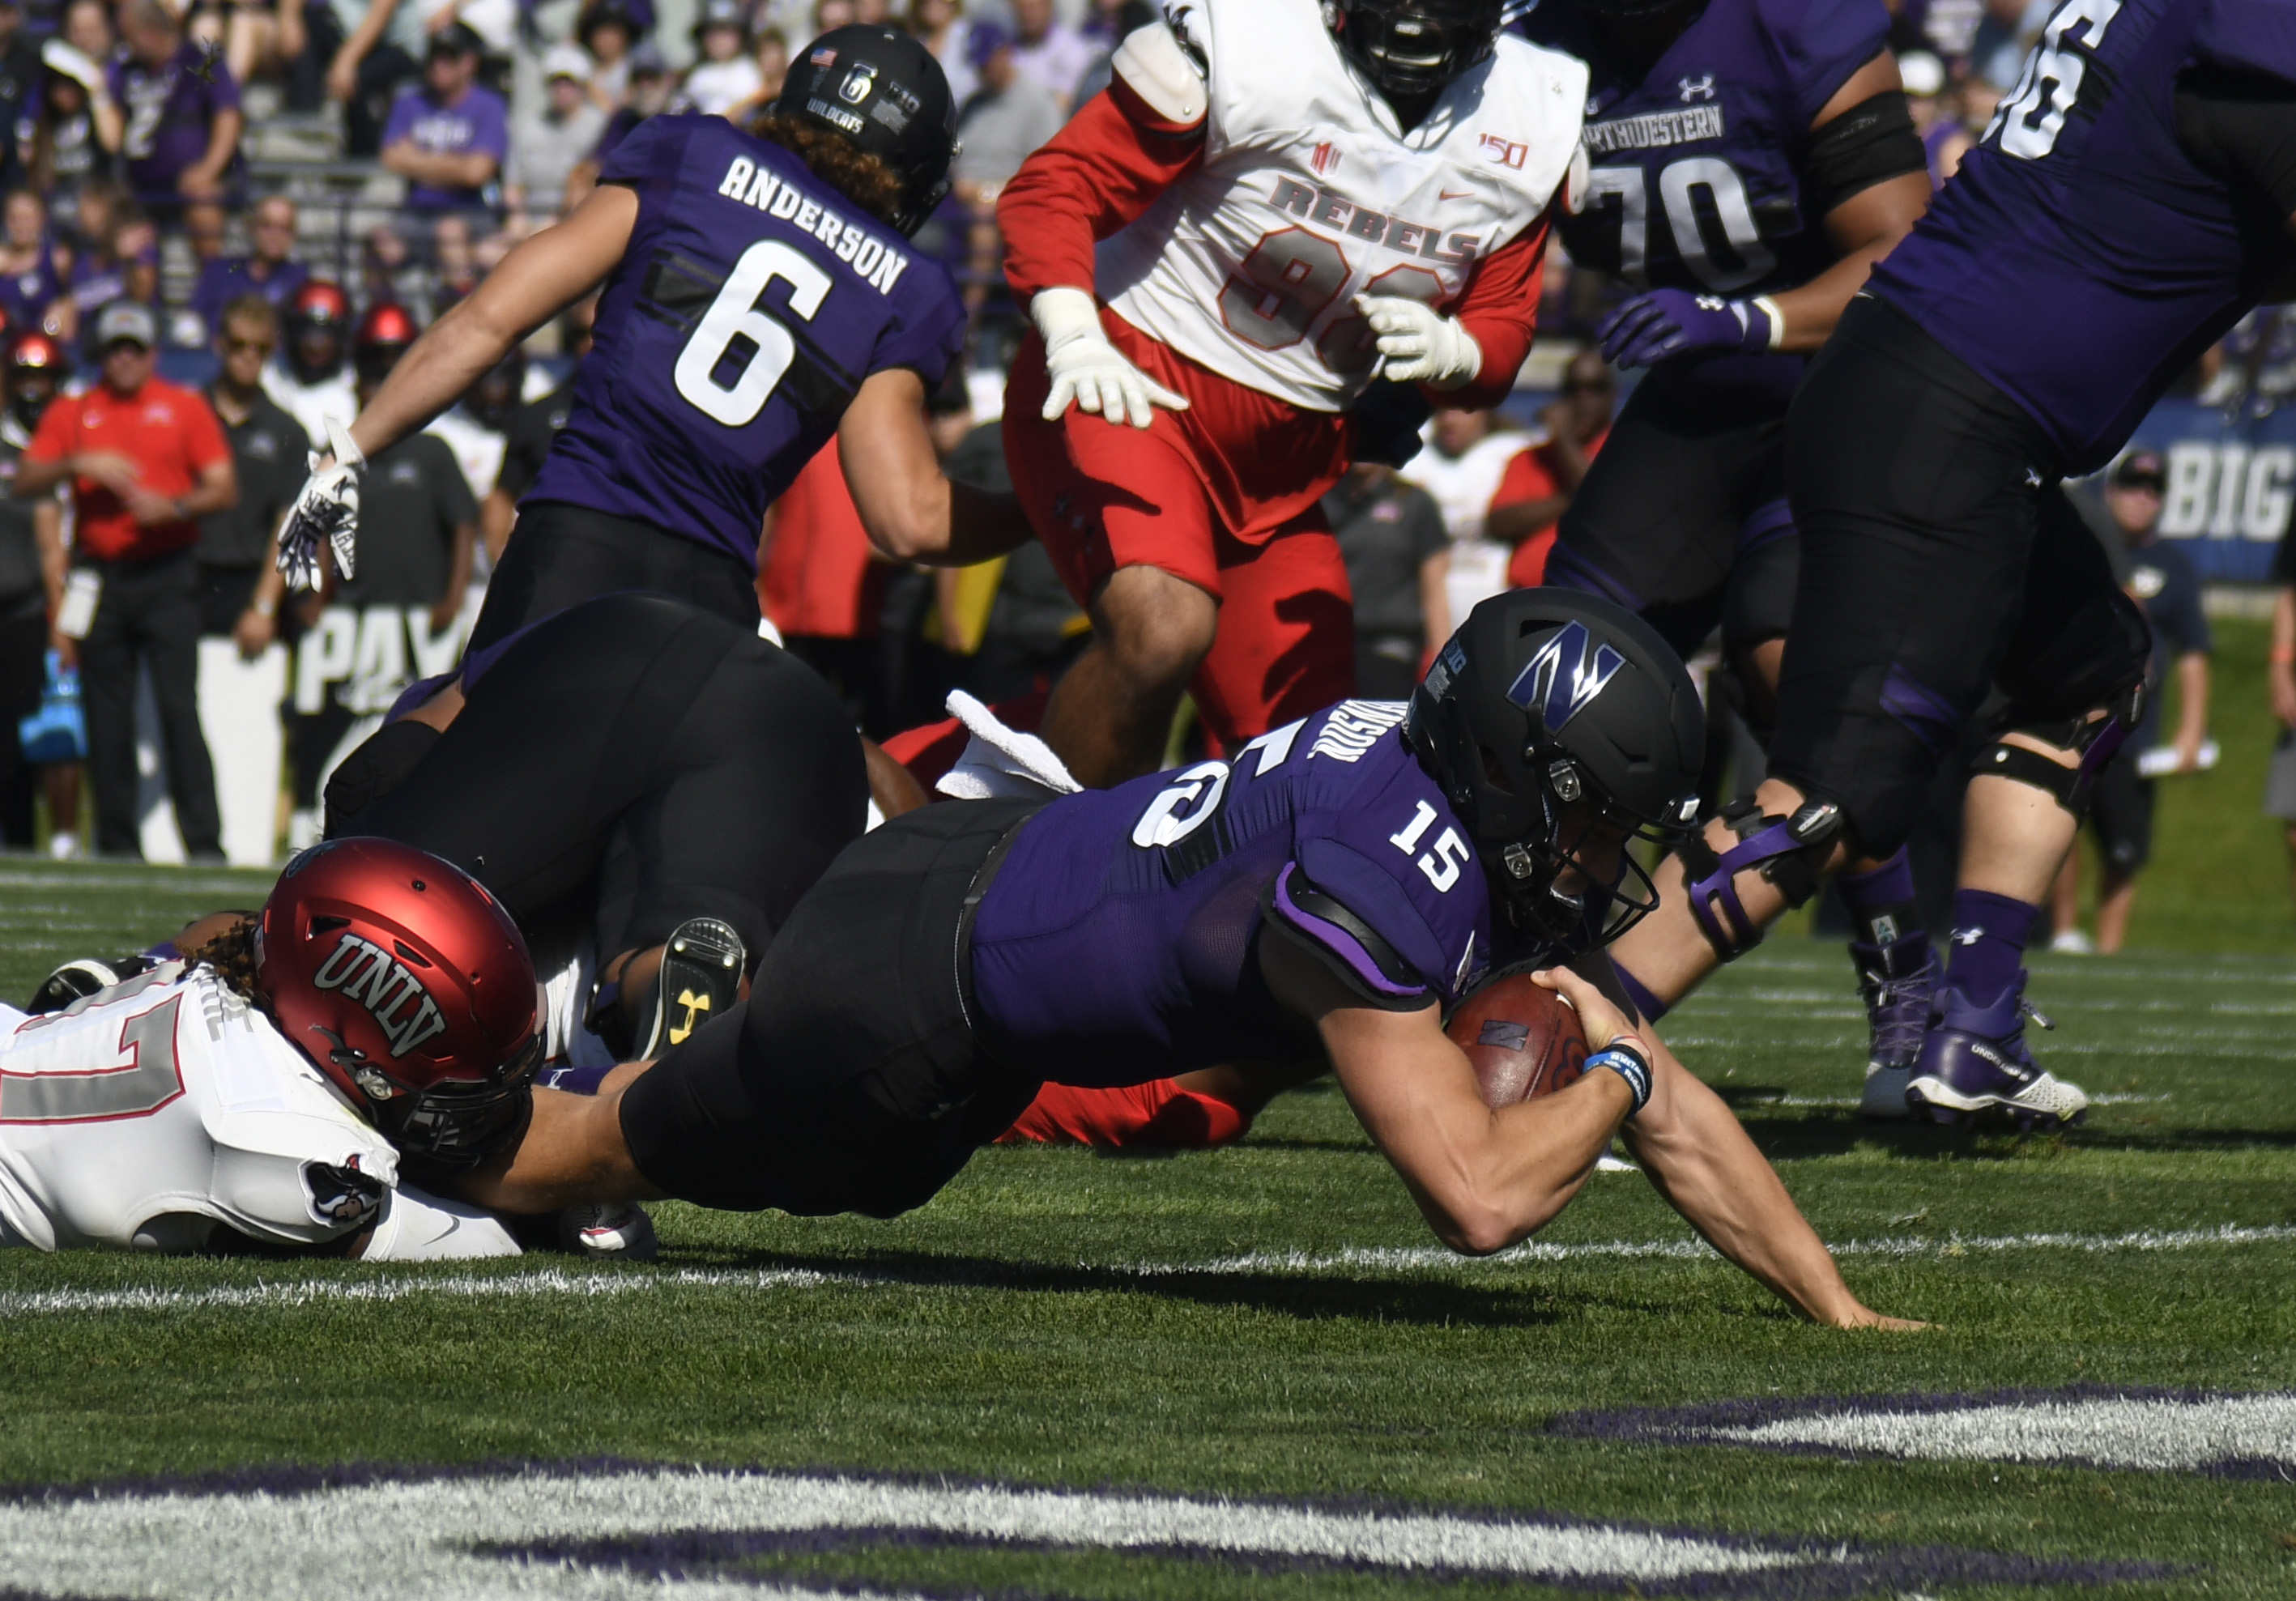 NCAA Football: UNLV at Northwestern